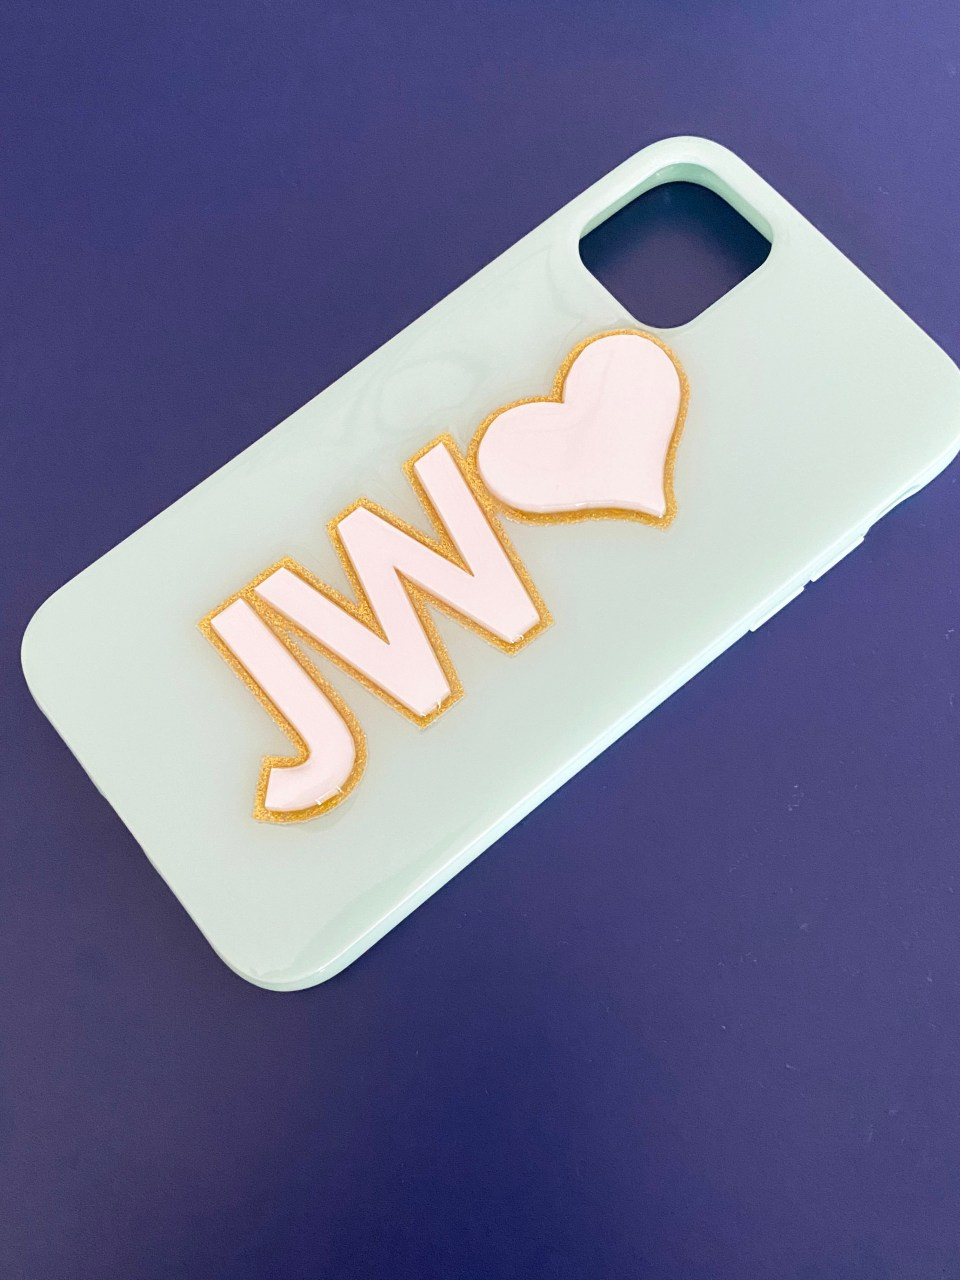 Baublebar x OMC Personalized Phone Case